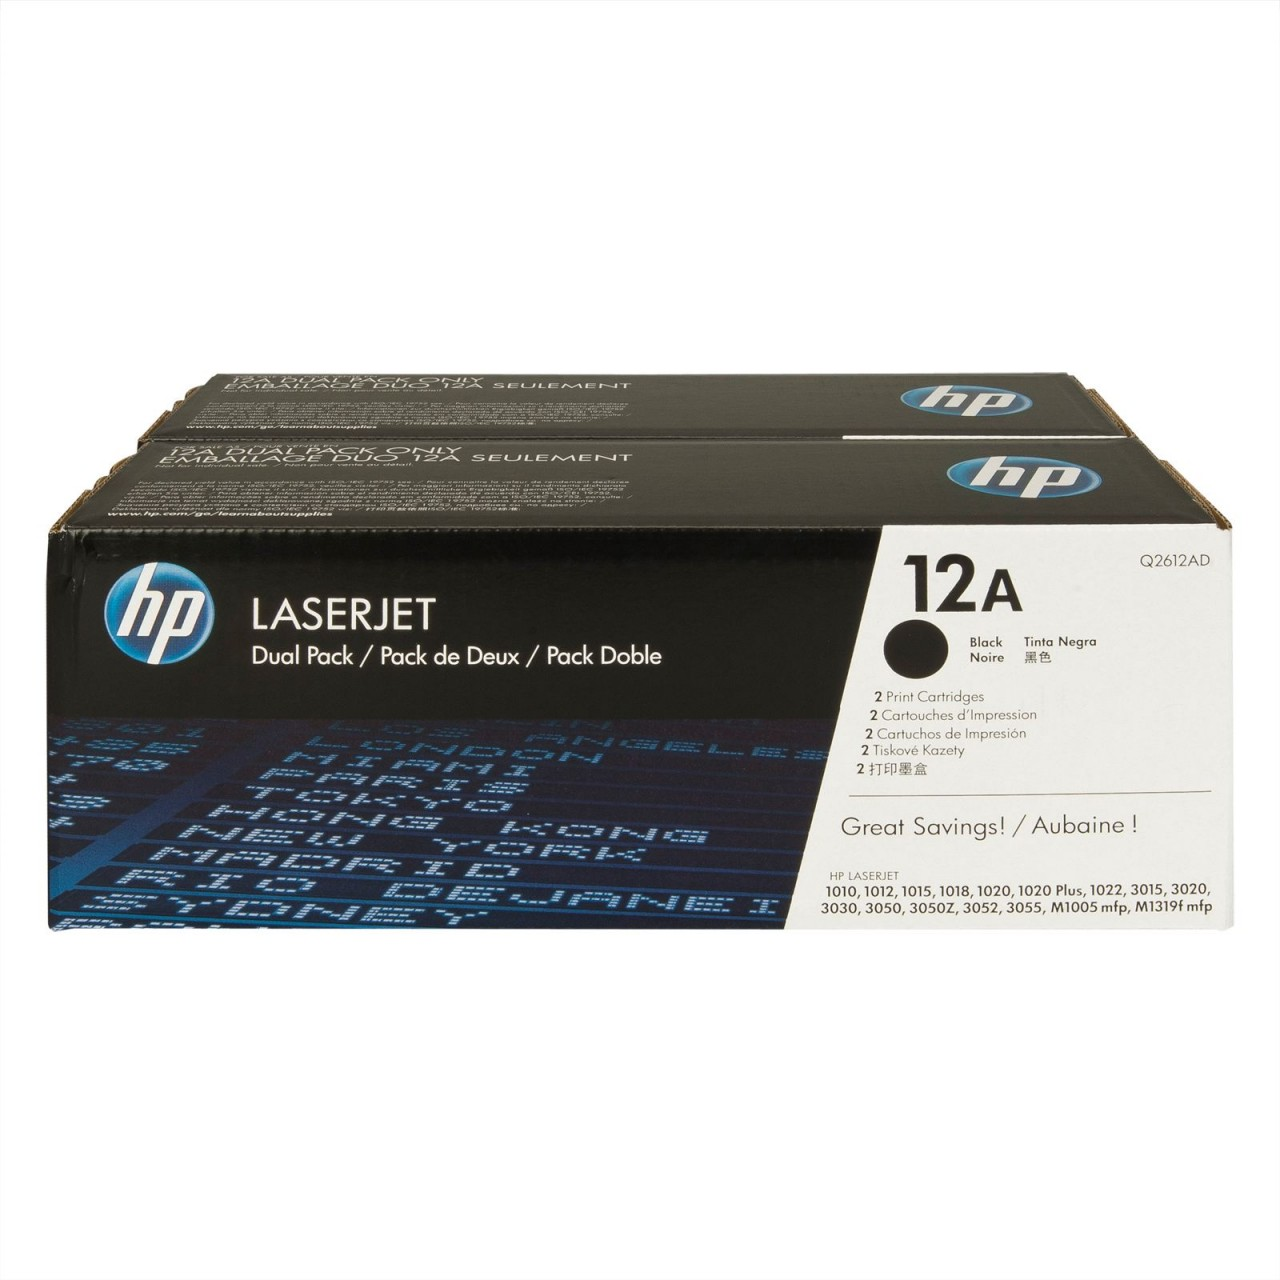 HP 12A (Q2612AD) CARTUS TONER BLACK - 2pack